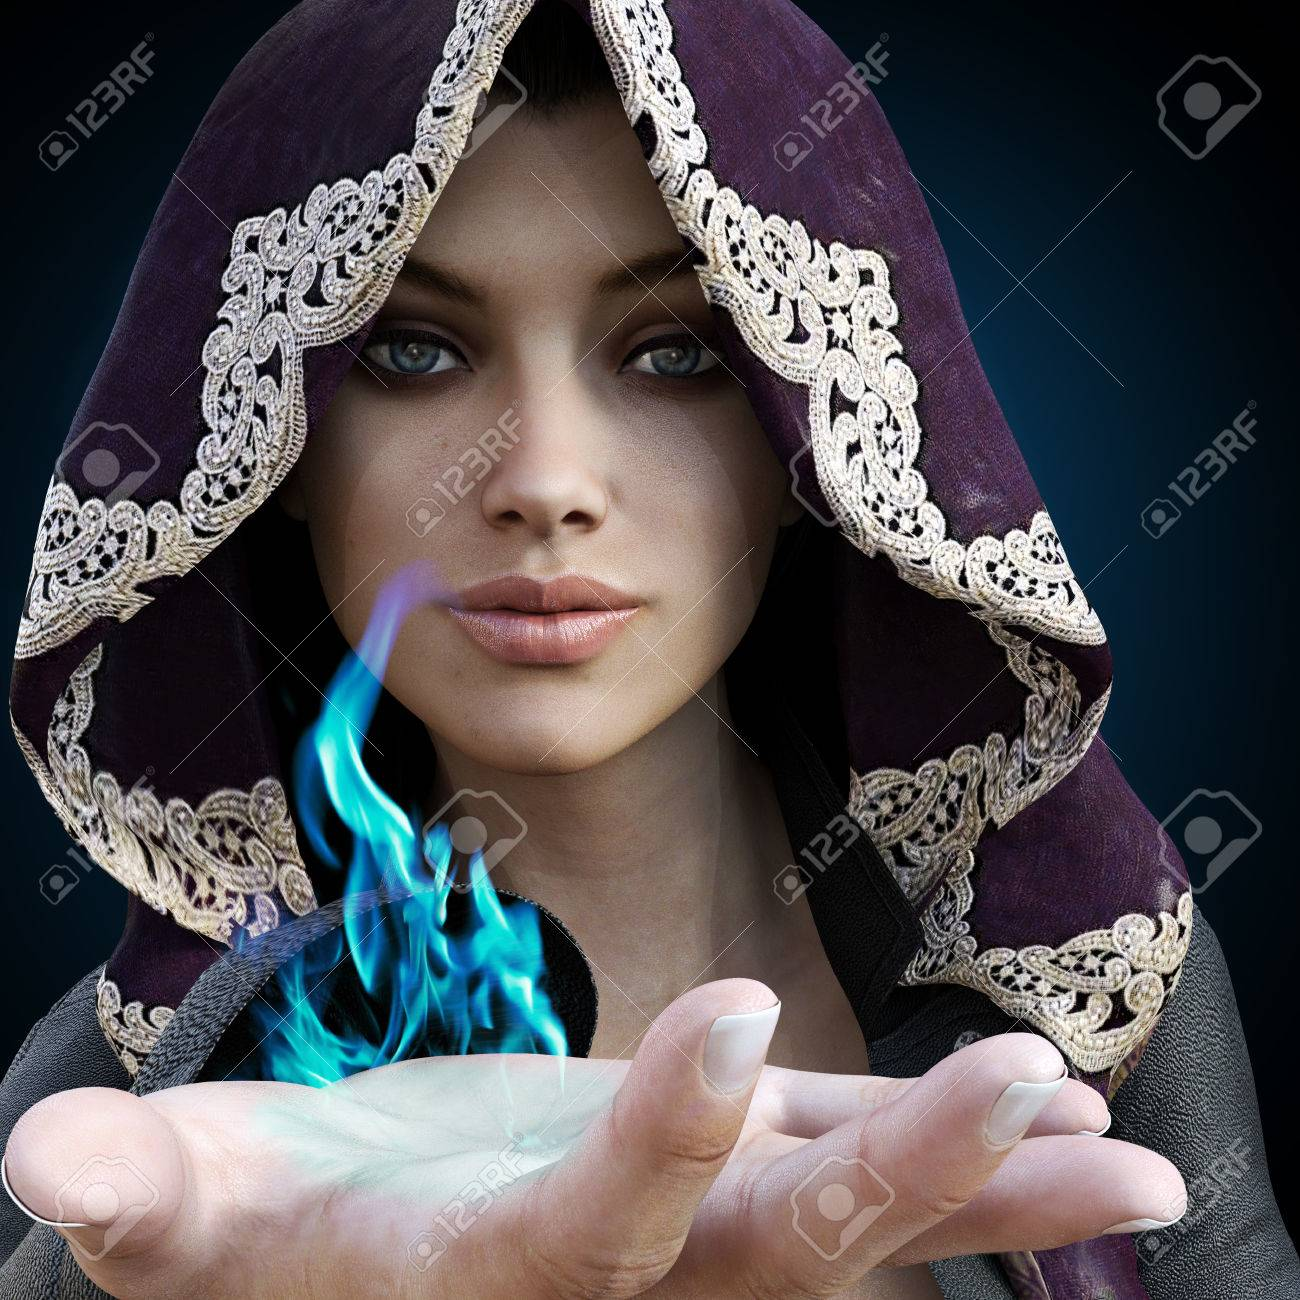 Female sorcerer with blue magic coming from her hand on a gradient black background. Standard-Bild - 52448913